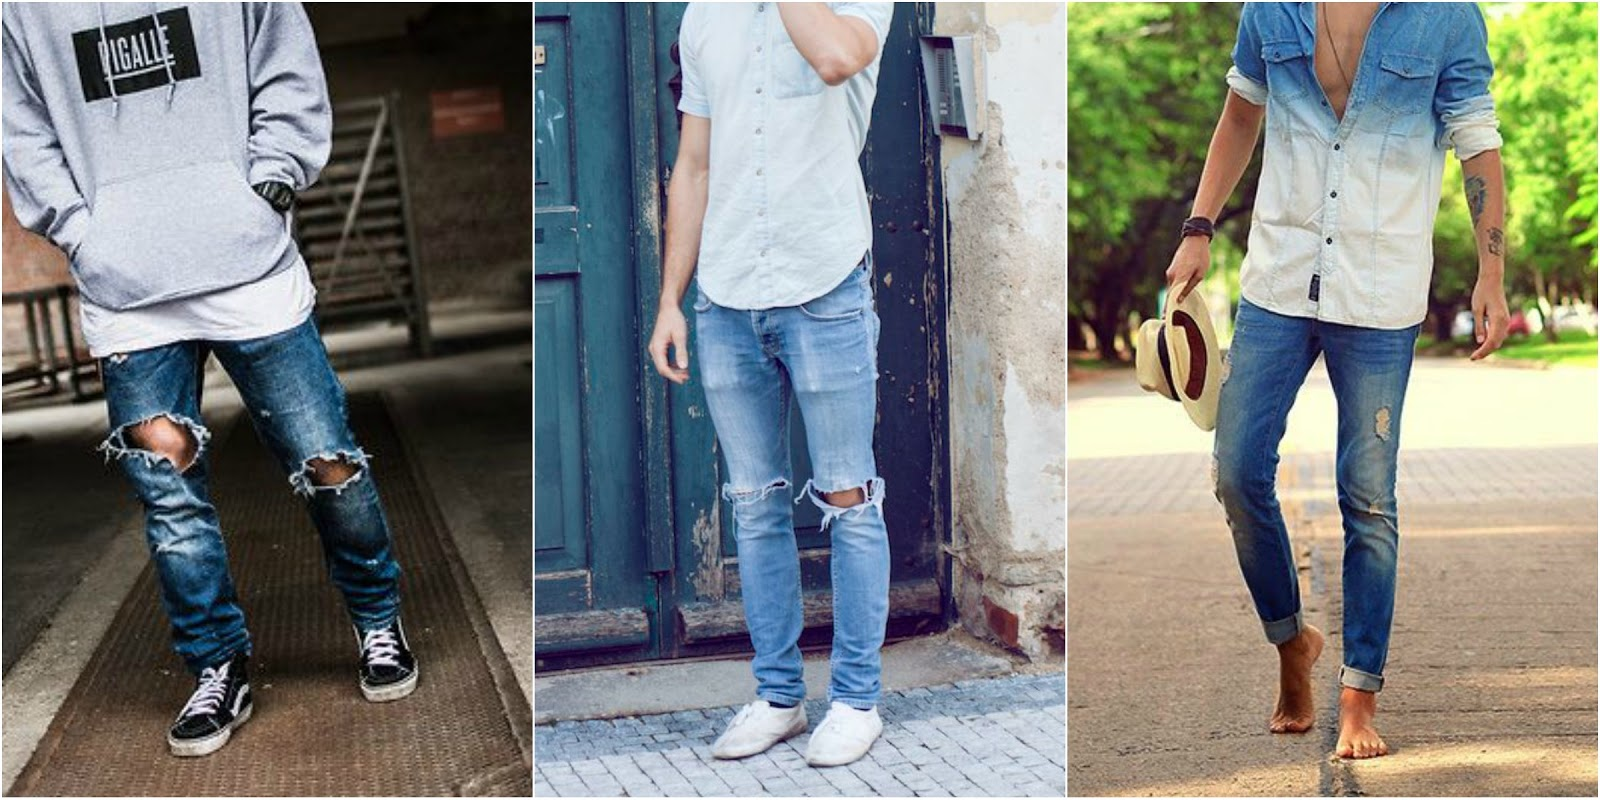 men fashion trends for spring summer destroyed & trashed denim by jonathan zegbe - male blogger from antwerp